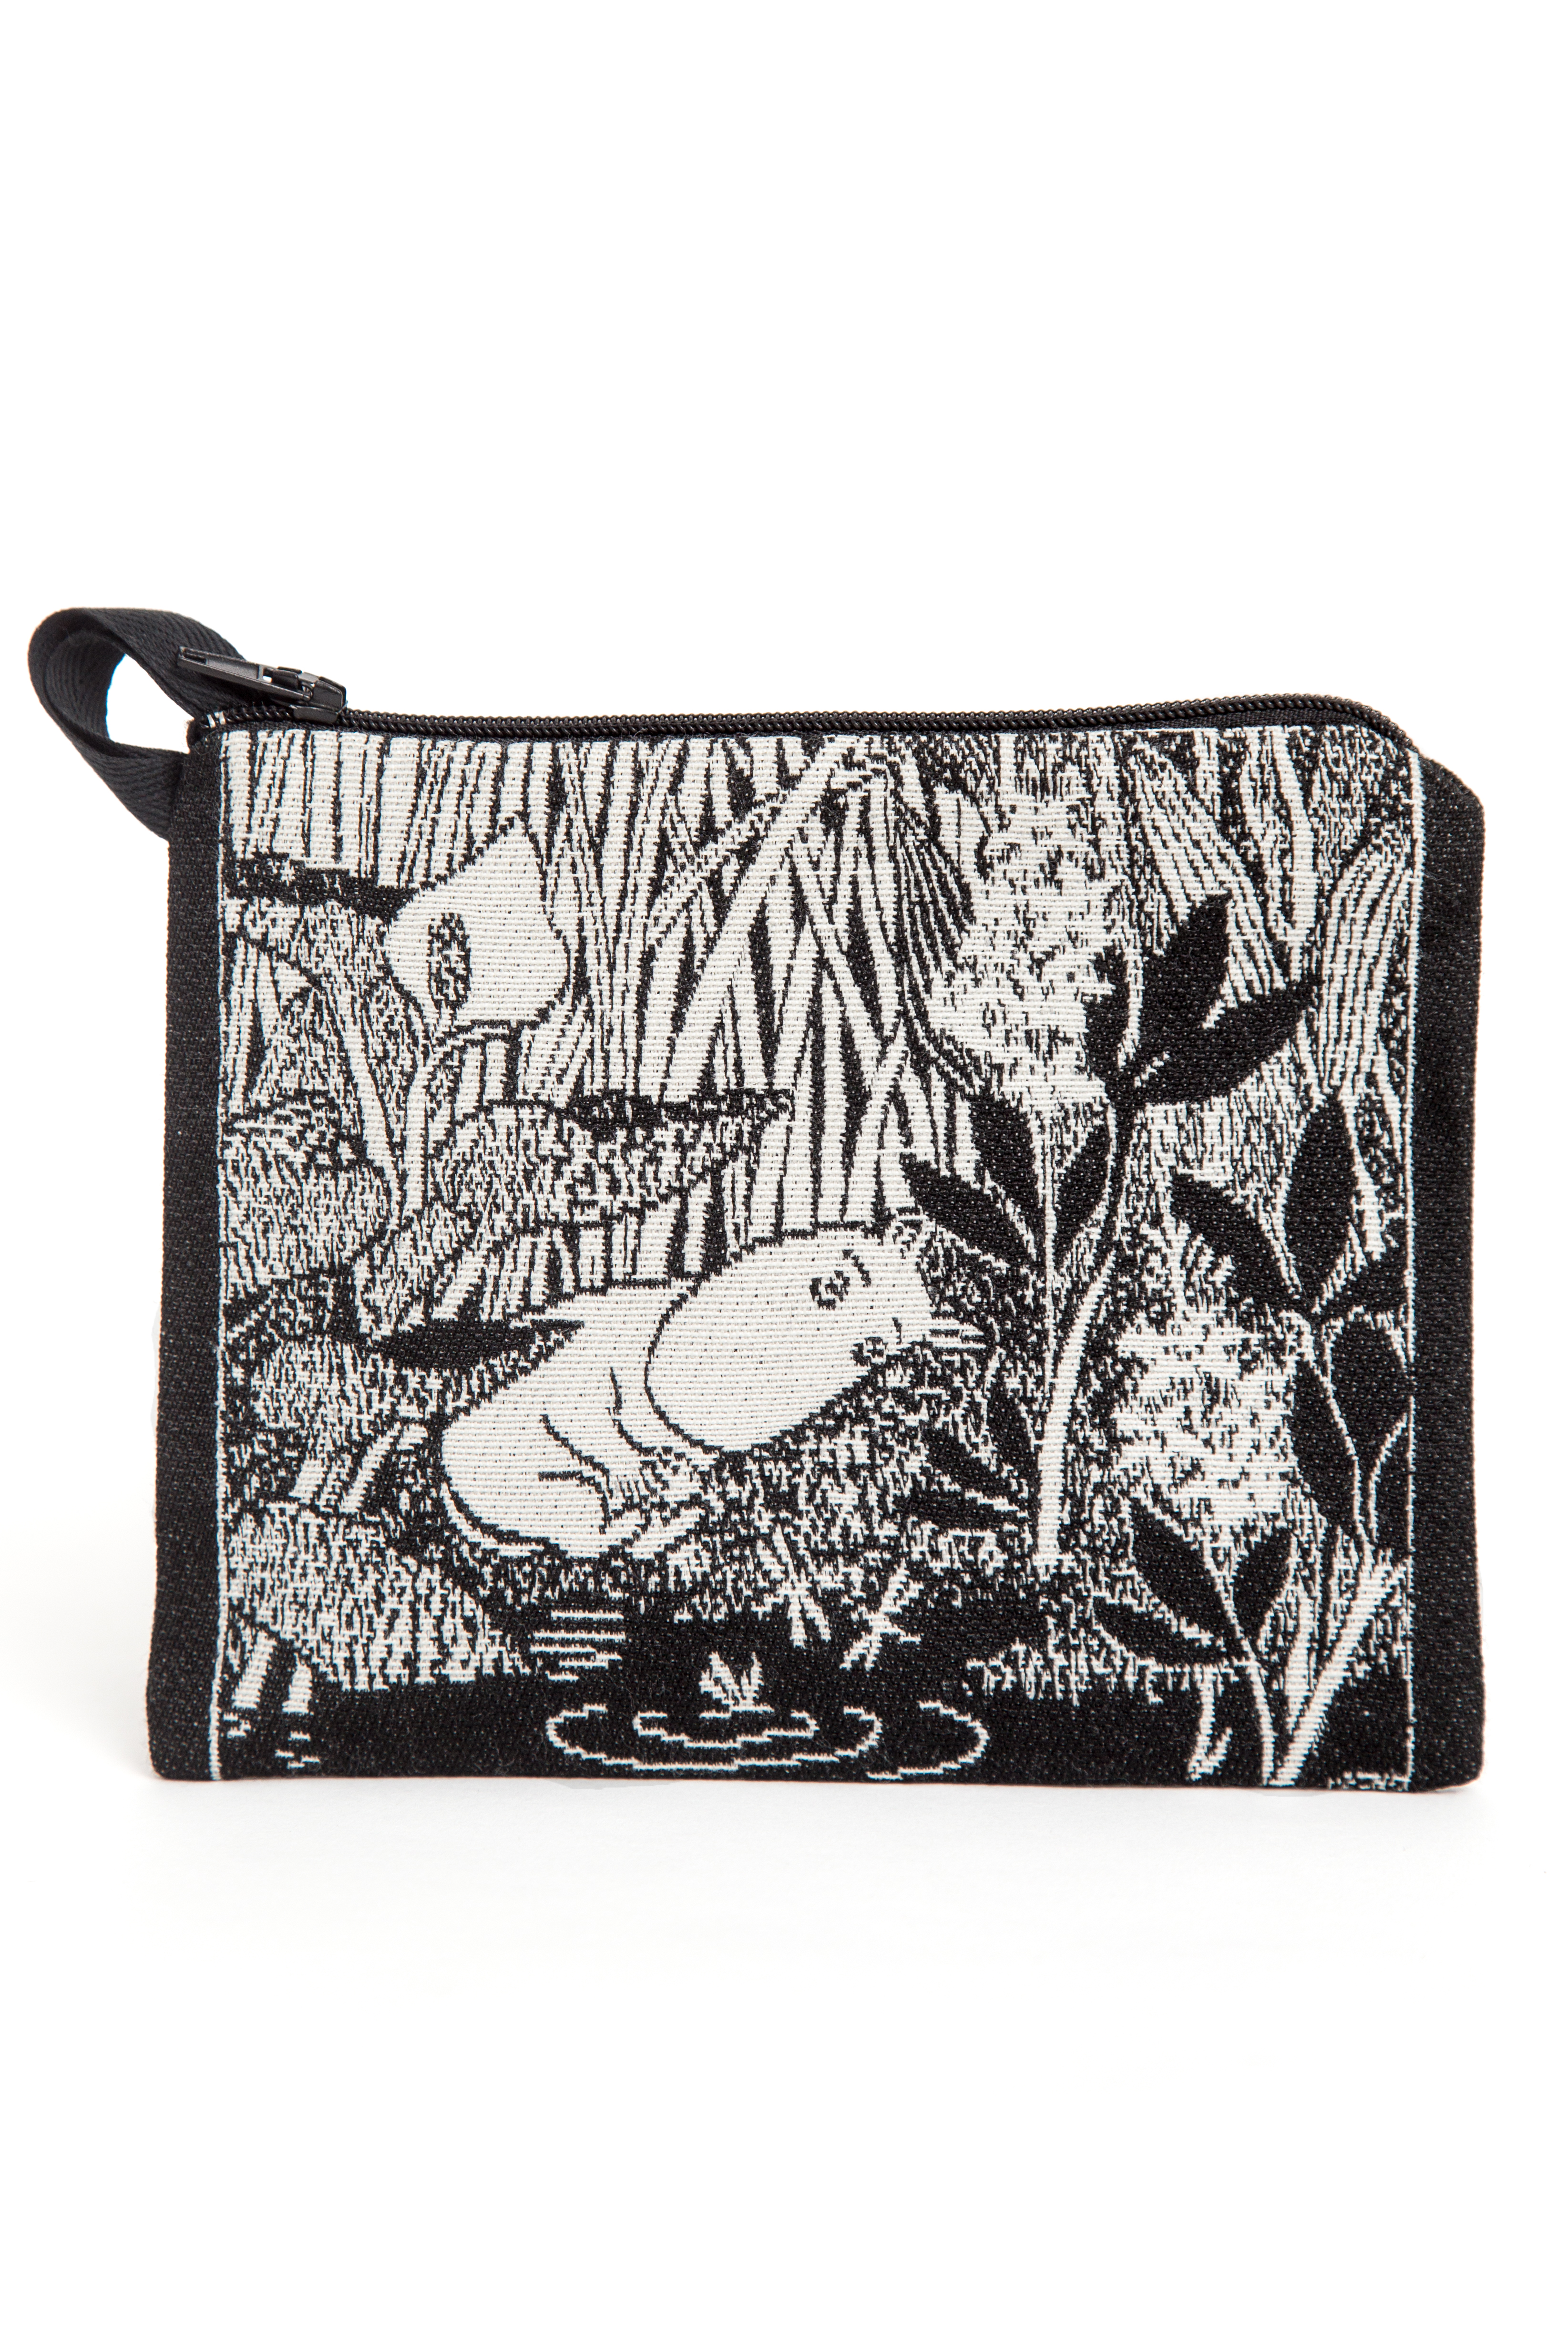 Aurora Decorari Gobelin Purse 15,5 x 12 cm Dreaming Moomin 102PRM